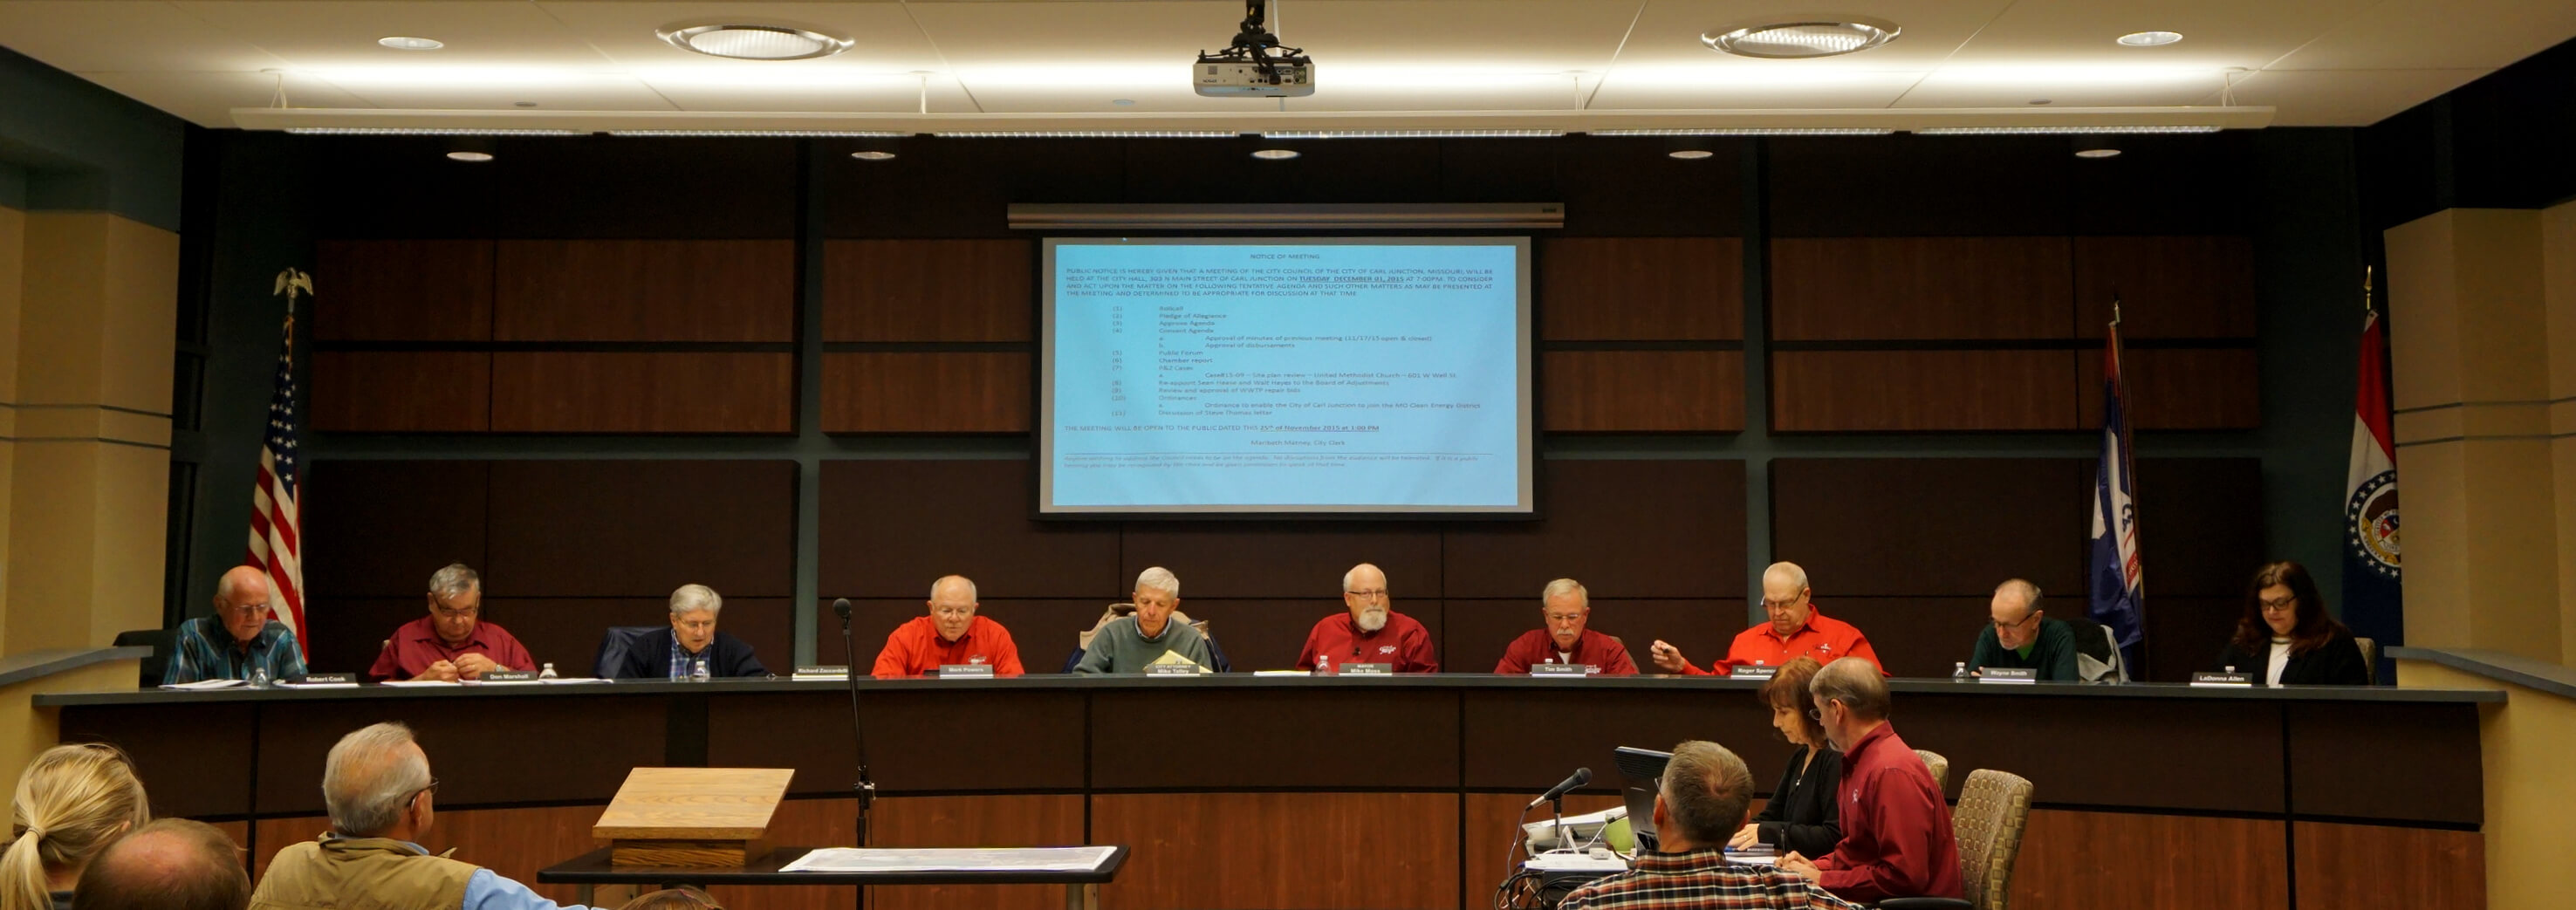 City Council Meeing